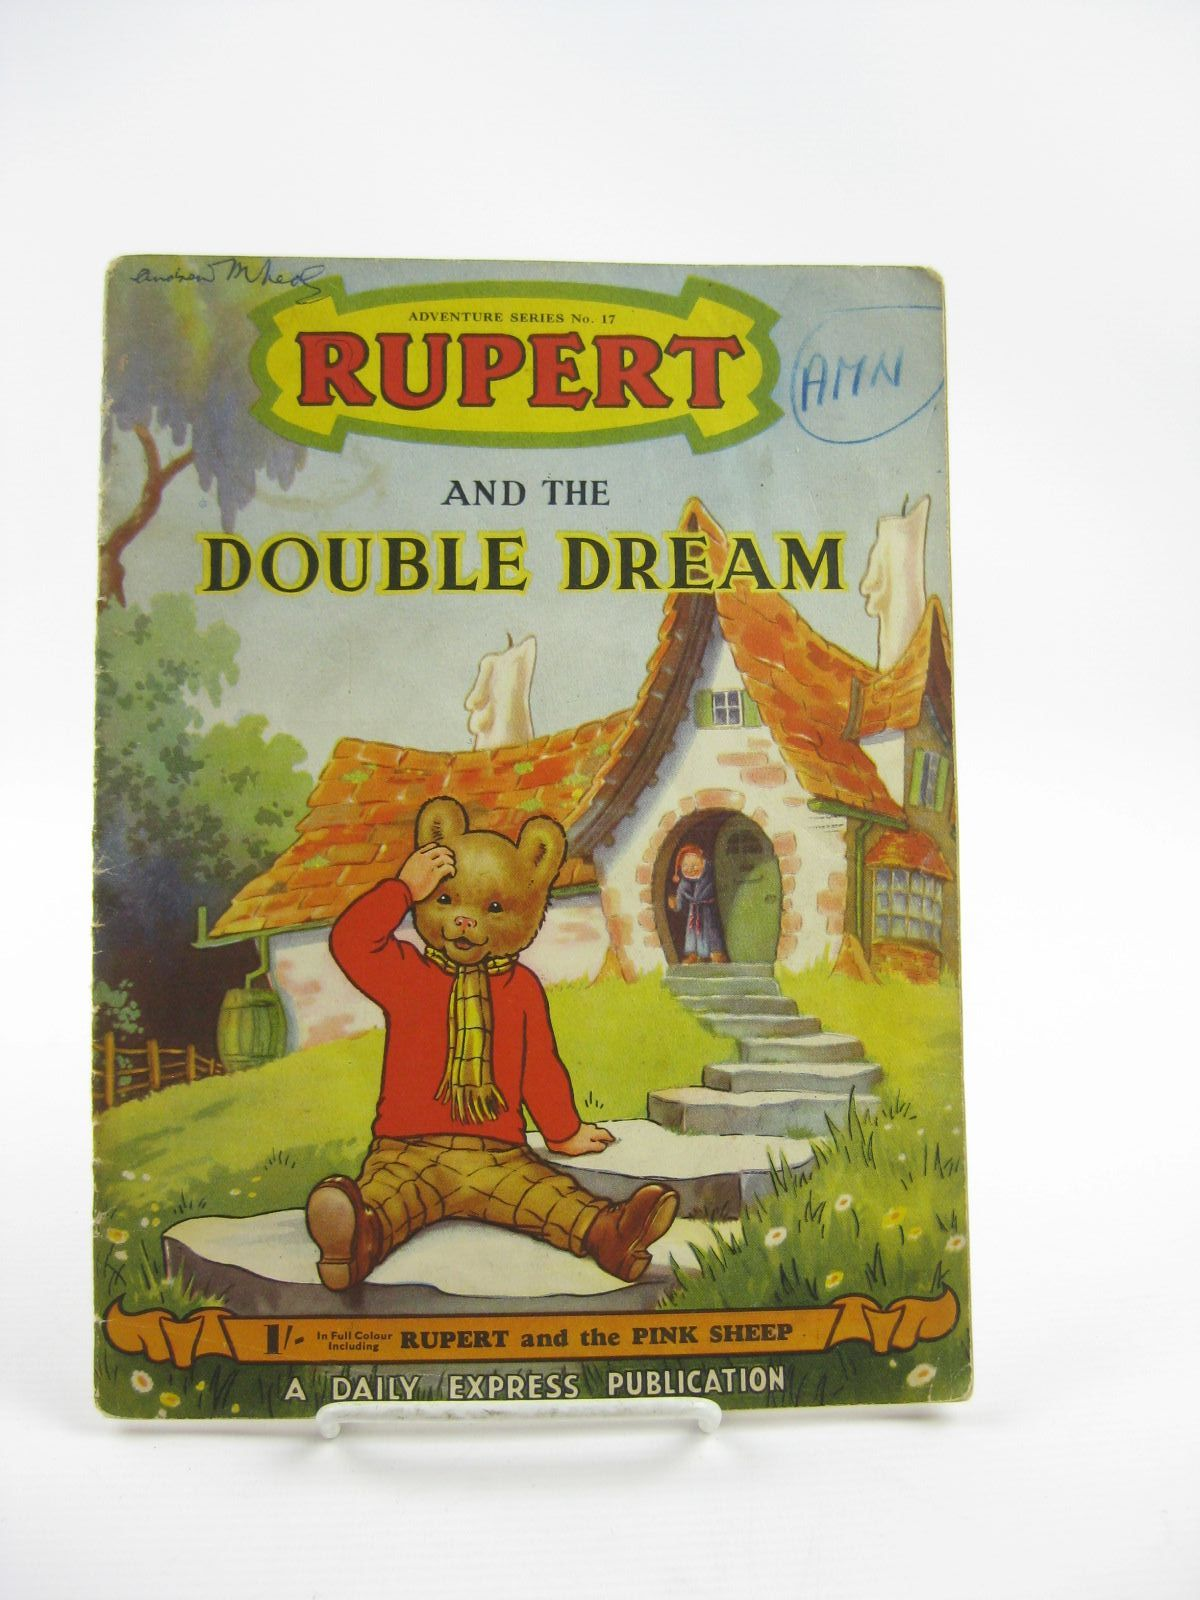 Photo of RUPERT ADVENTURE SERIES No. 17 - RUPERT AND THE DOUBLE DREAM written by Bestall, Alfred published by Daily Express (STOCK CODE: 1310796)  for sale by Stella & Rose's Books